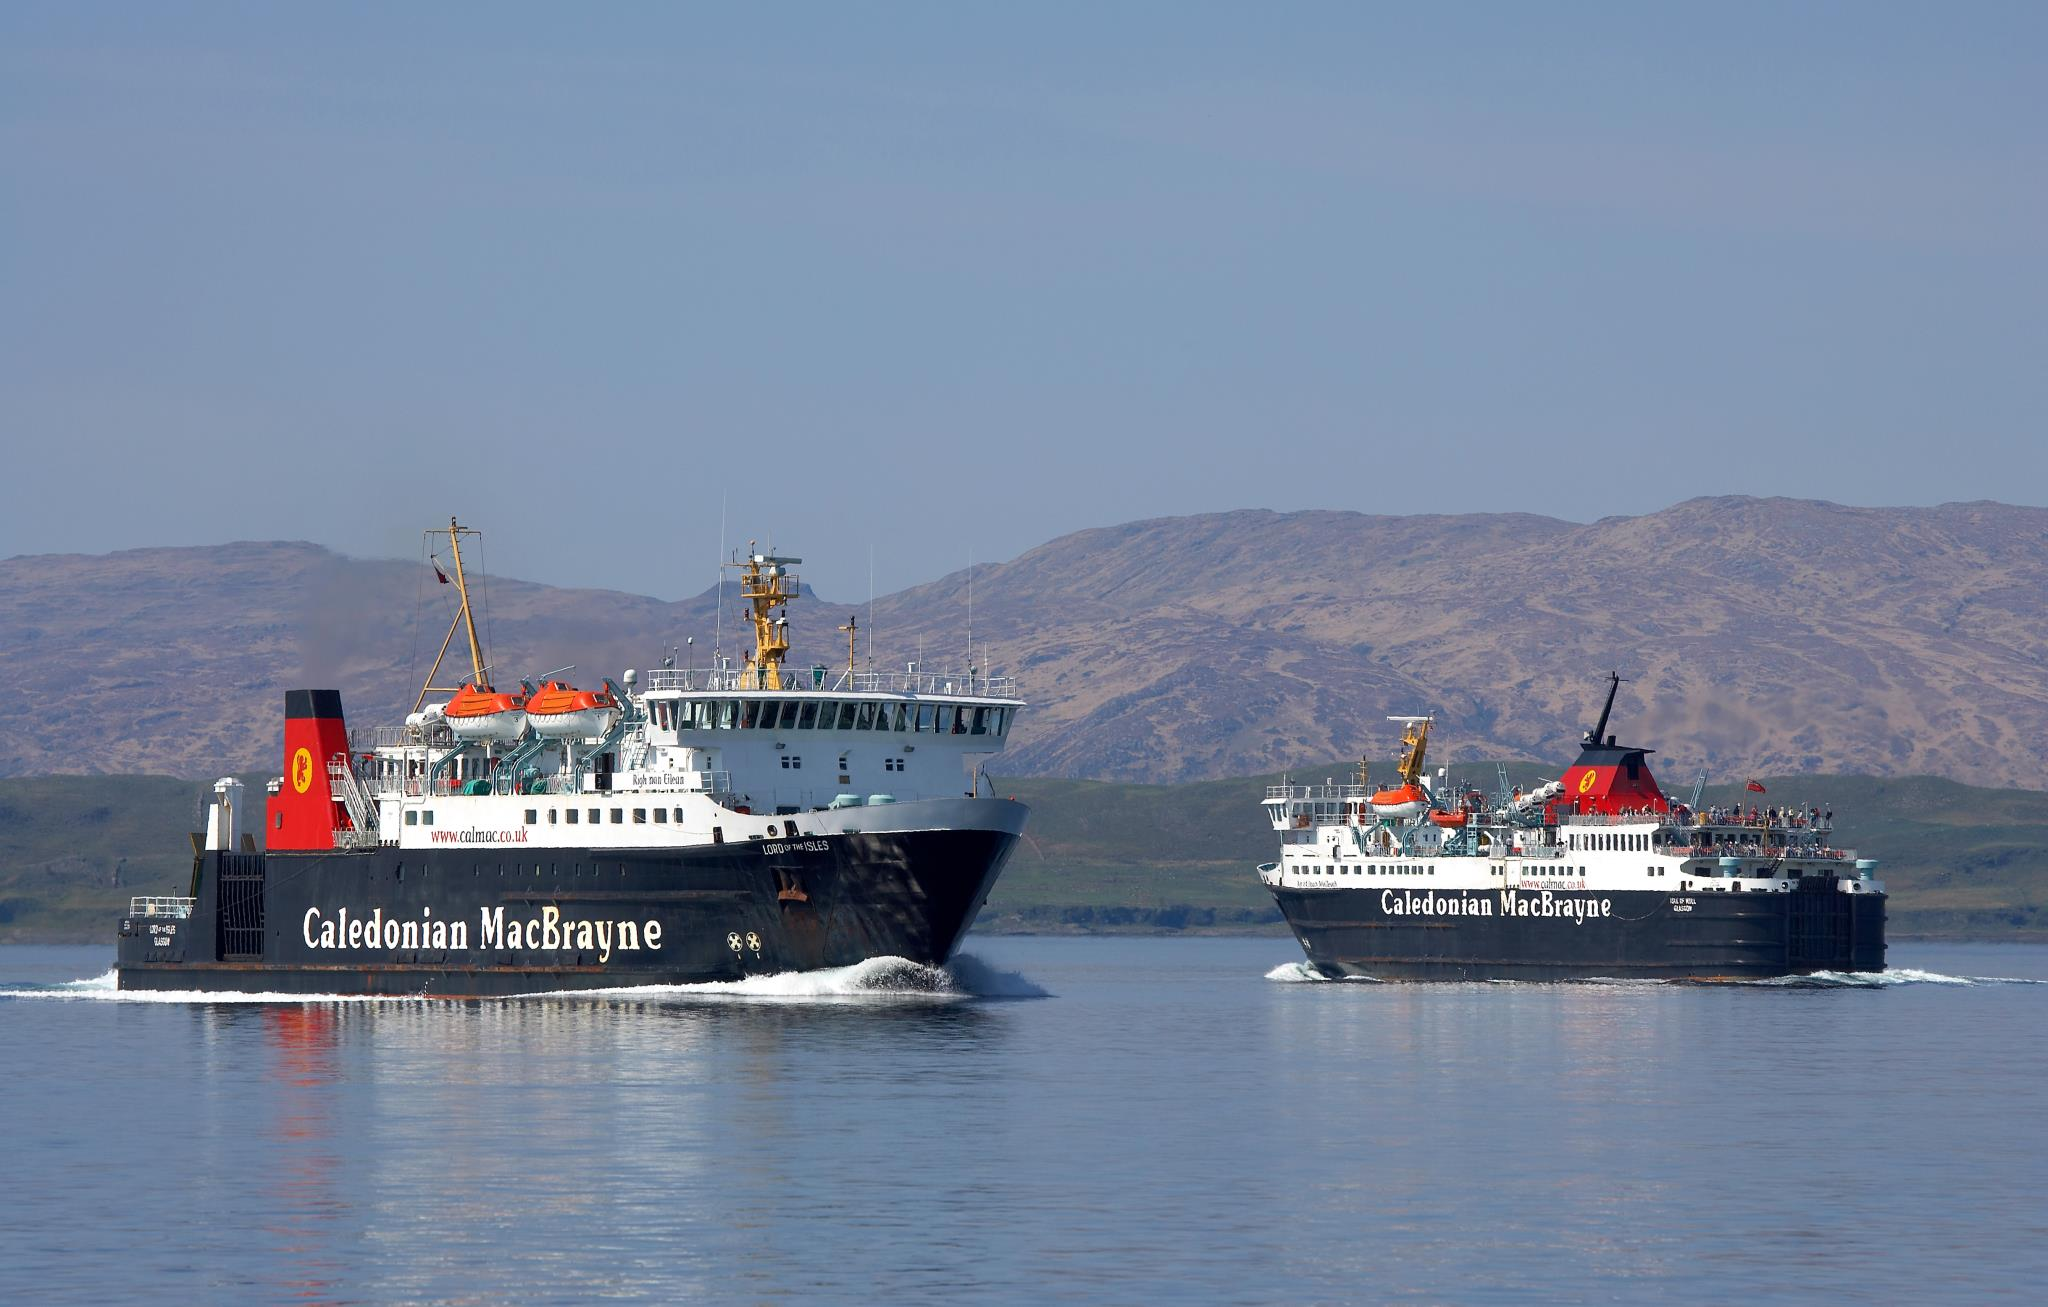 Caladonian MacBrayne, Transport, Ferry, Oban, Argyll, Scotland